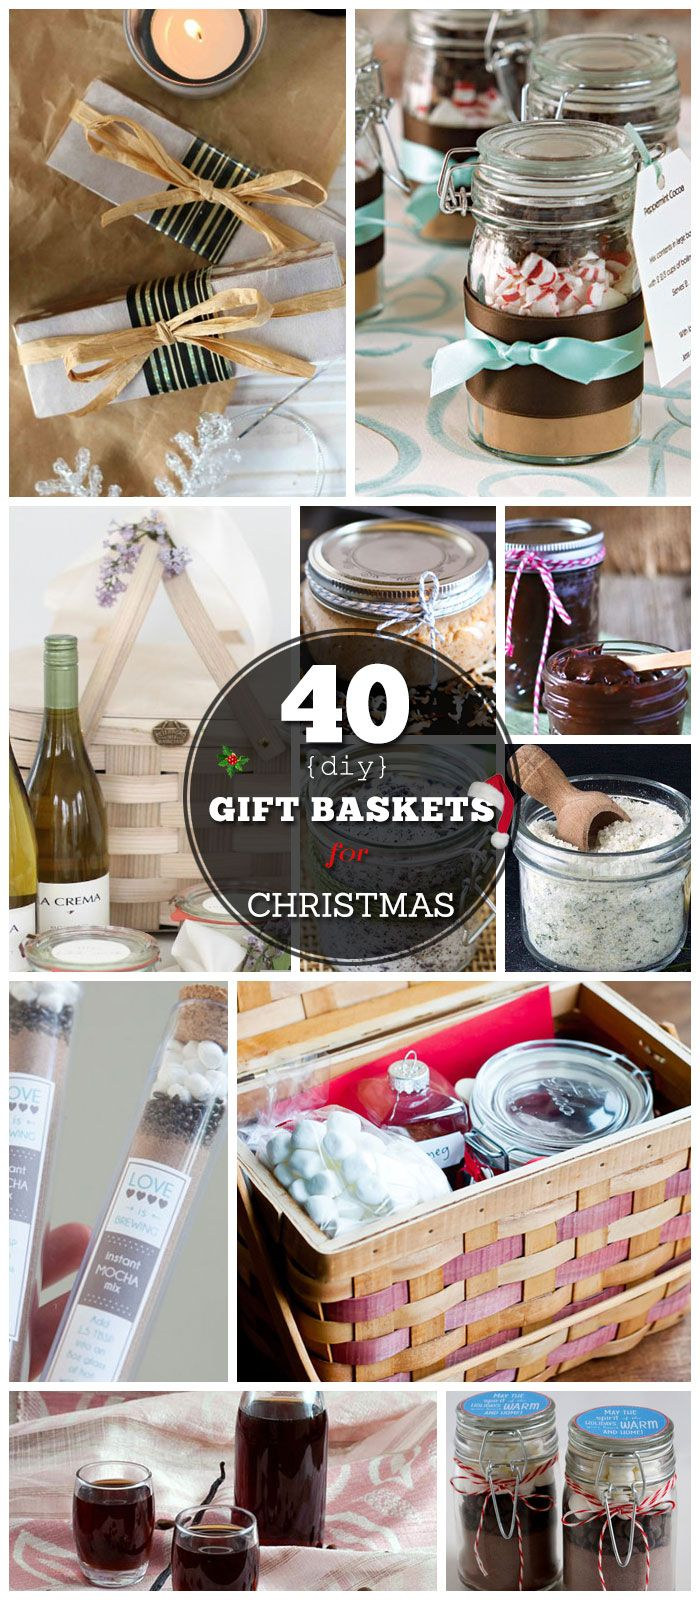 40 DIY Gift Basket Ideas for Christmas | Handmade Gift Ideas for Christmas